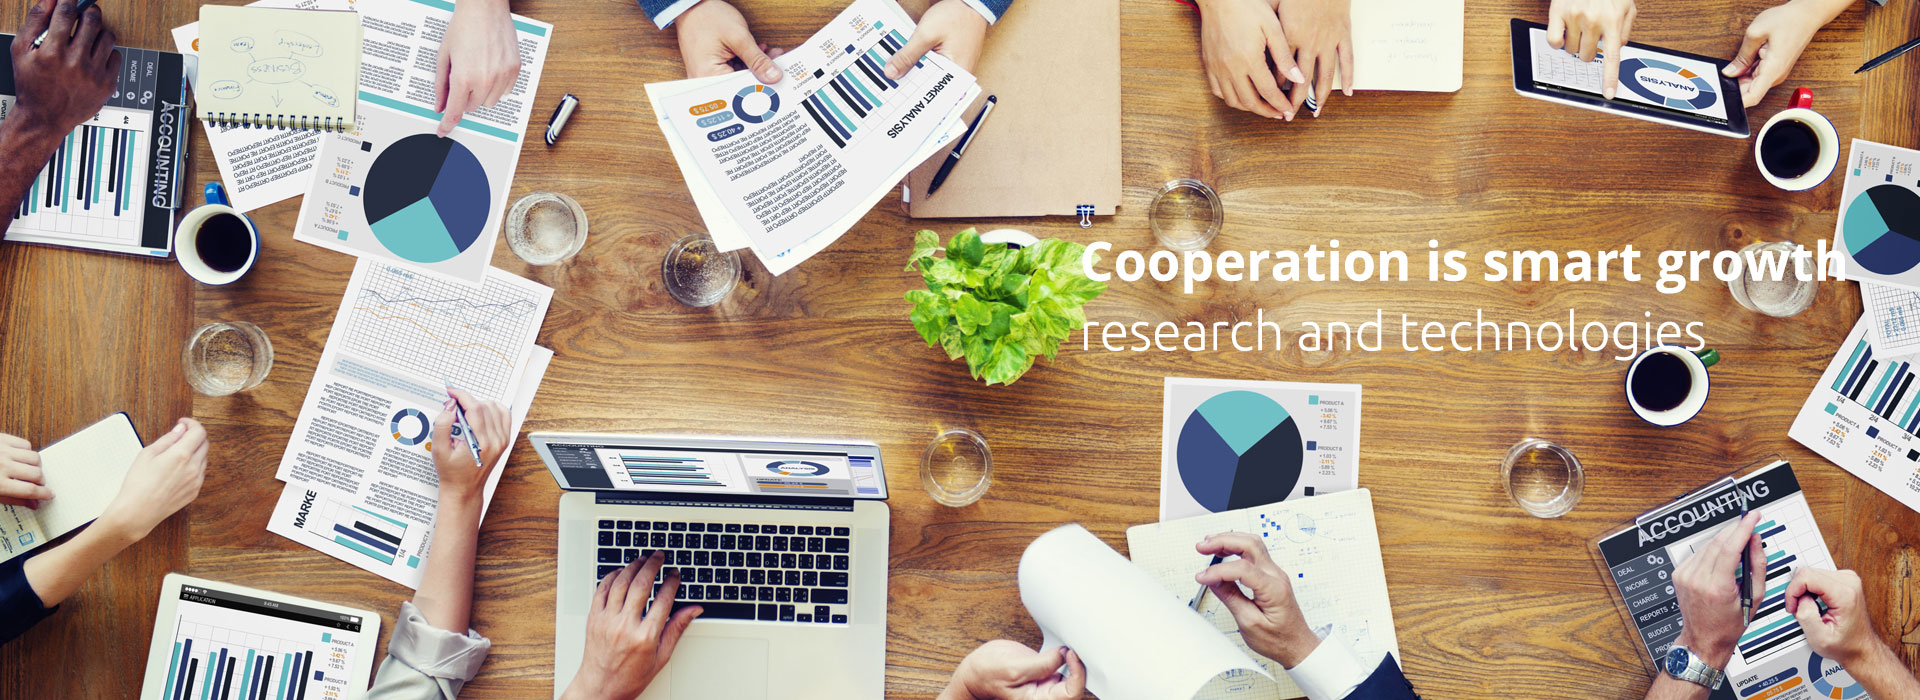 Cooperation is smart growth  research and technologies